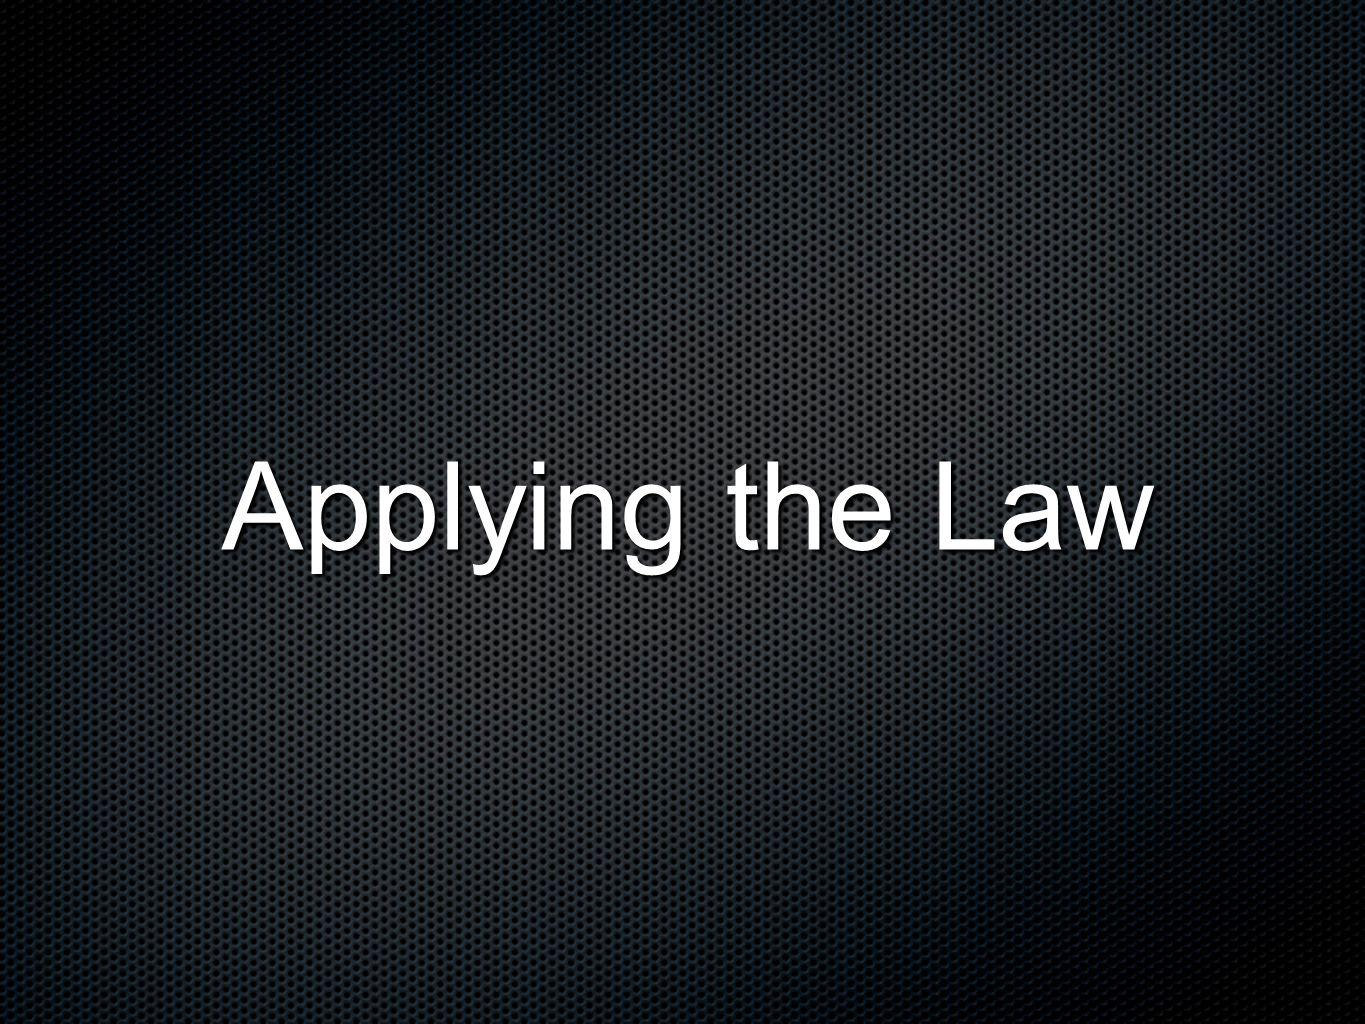 Applying the Law